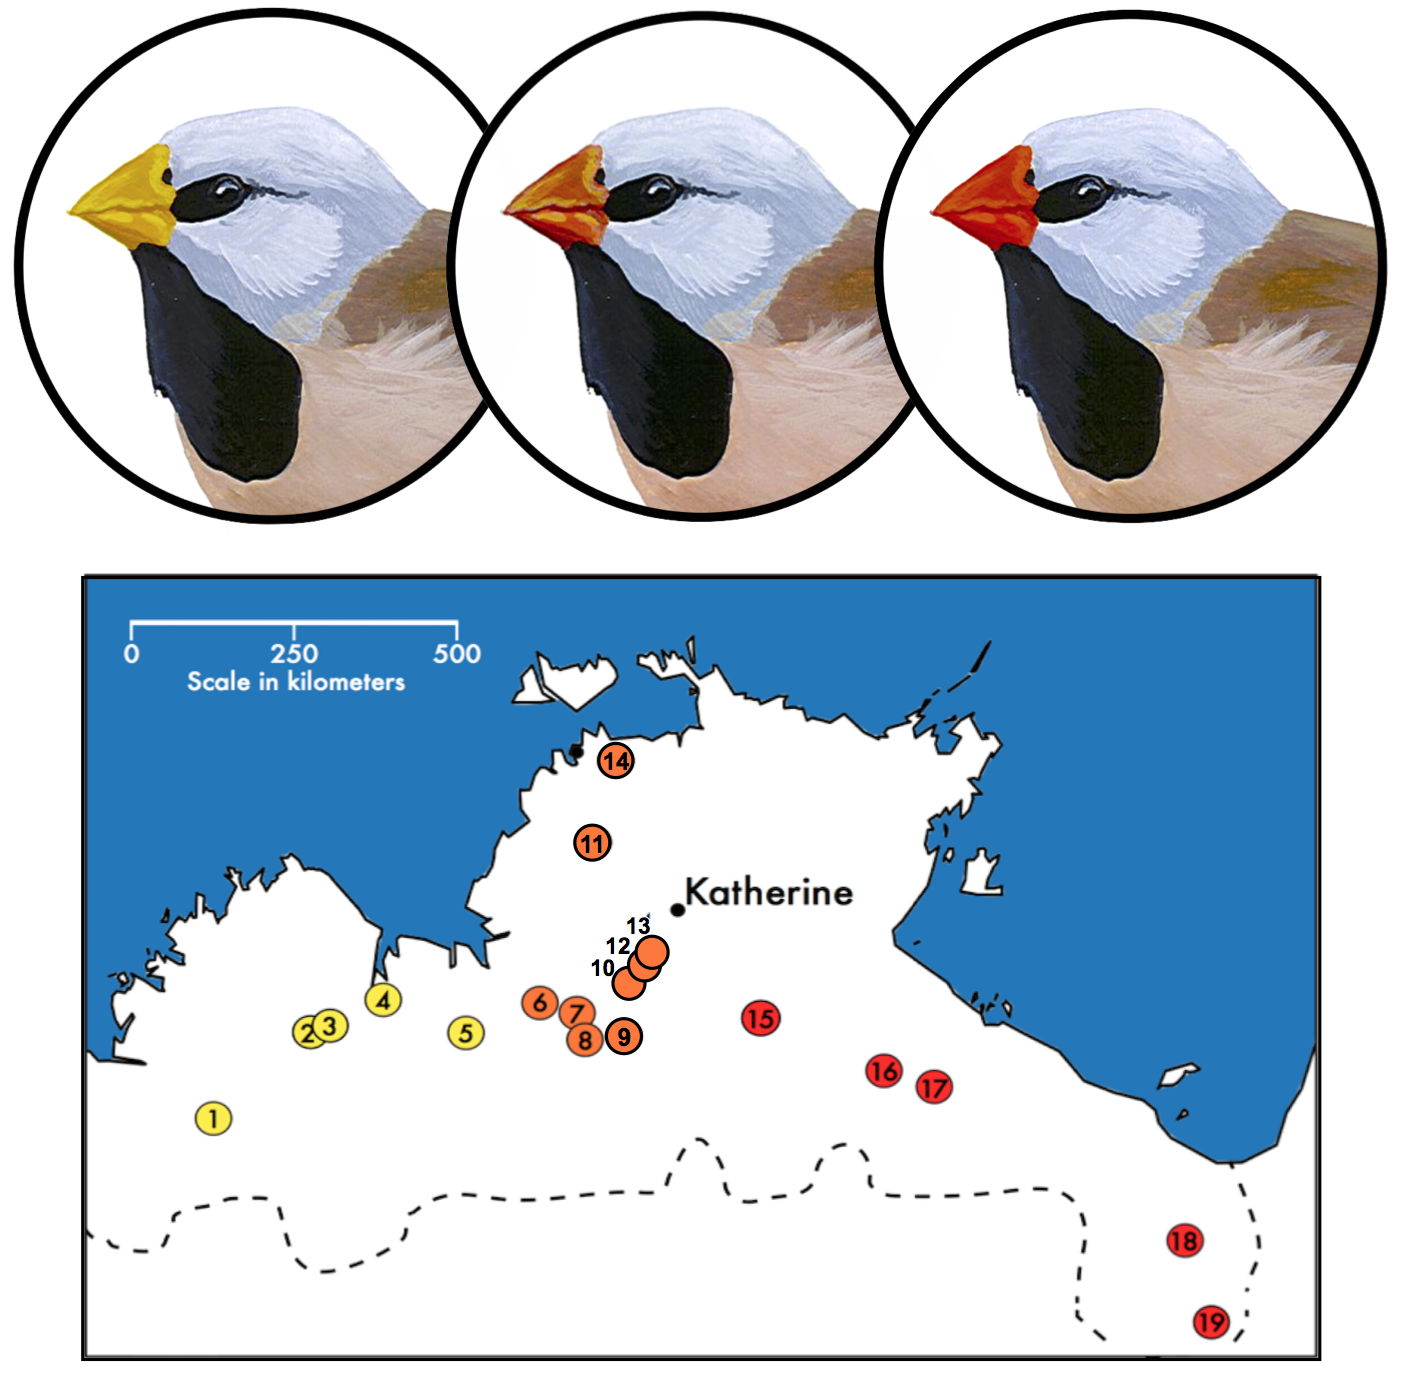 Top: Bill color variation across the range of the long-tailed finch ( Poephila acuticauda acuticauda , left; hybrid individual, center;  P. a. hecki , right.). Population sampling in northern Australia for admixture analysis. Sites are color coded by mean bill color. See Griffith and Hooper (2017).